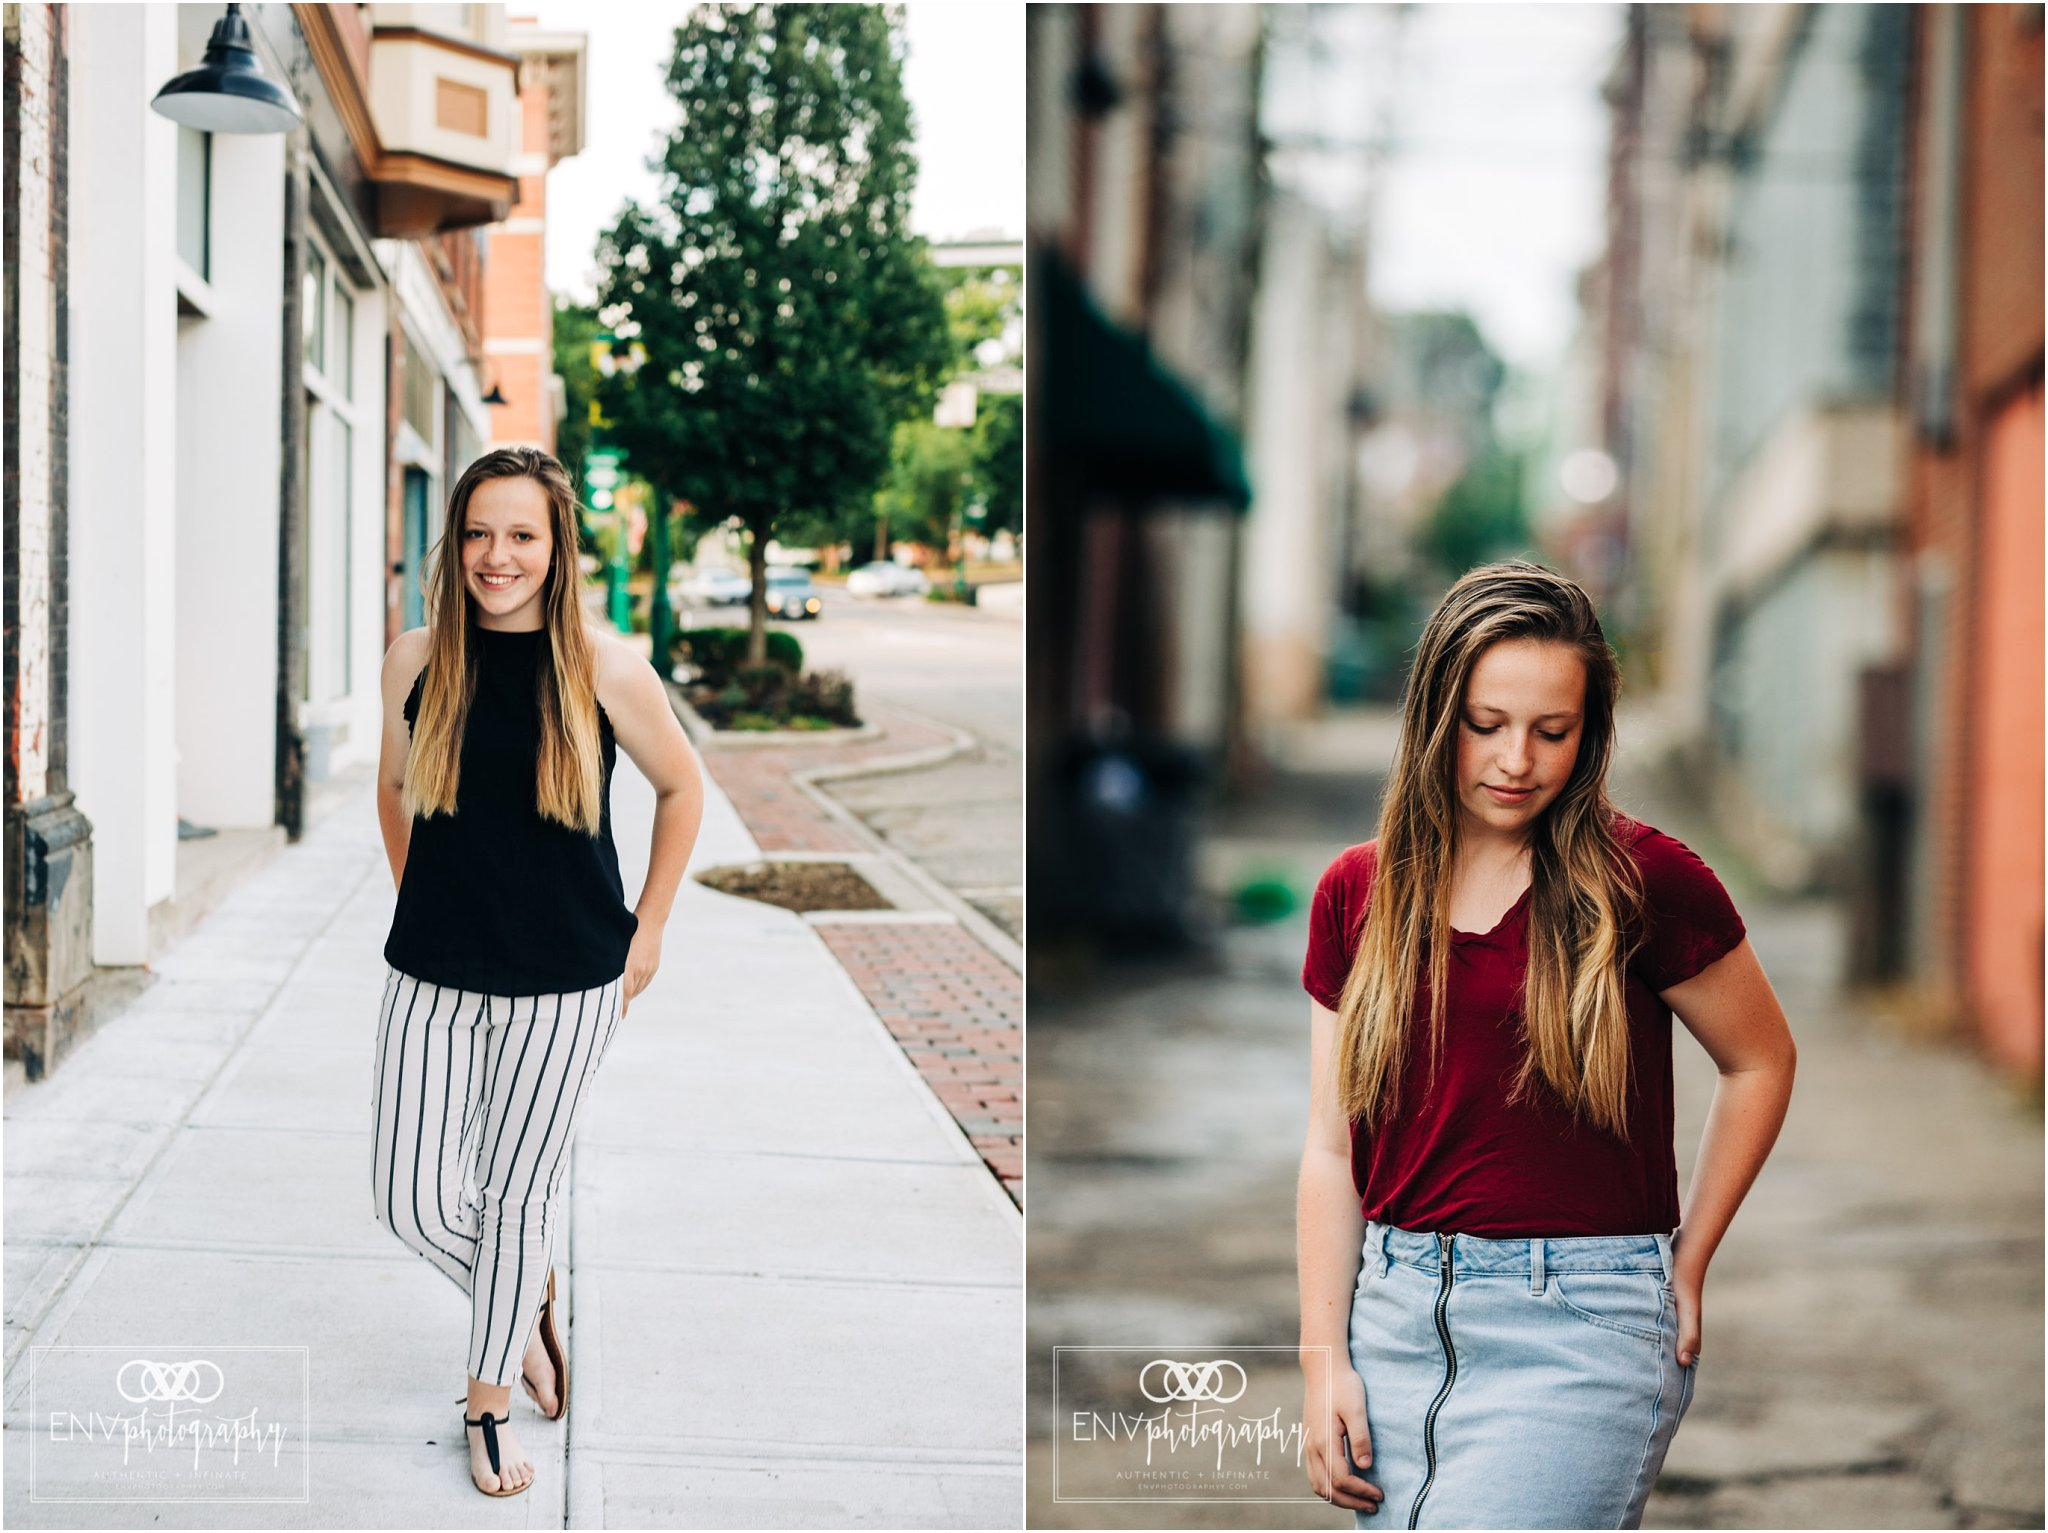 Mount Vernon Columbus Ohio Senior Photographer 2018 (4).jpg